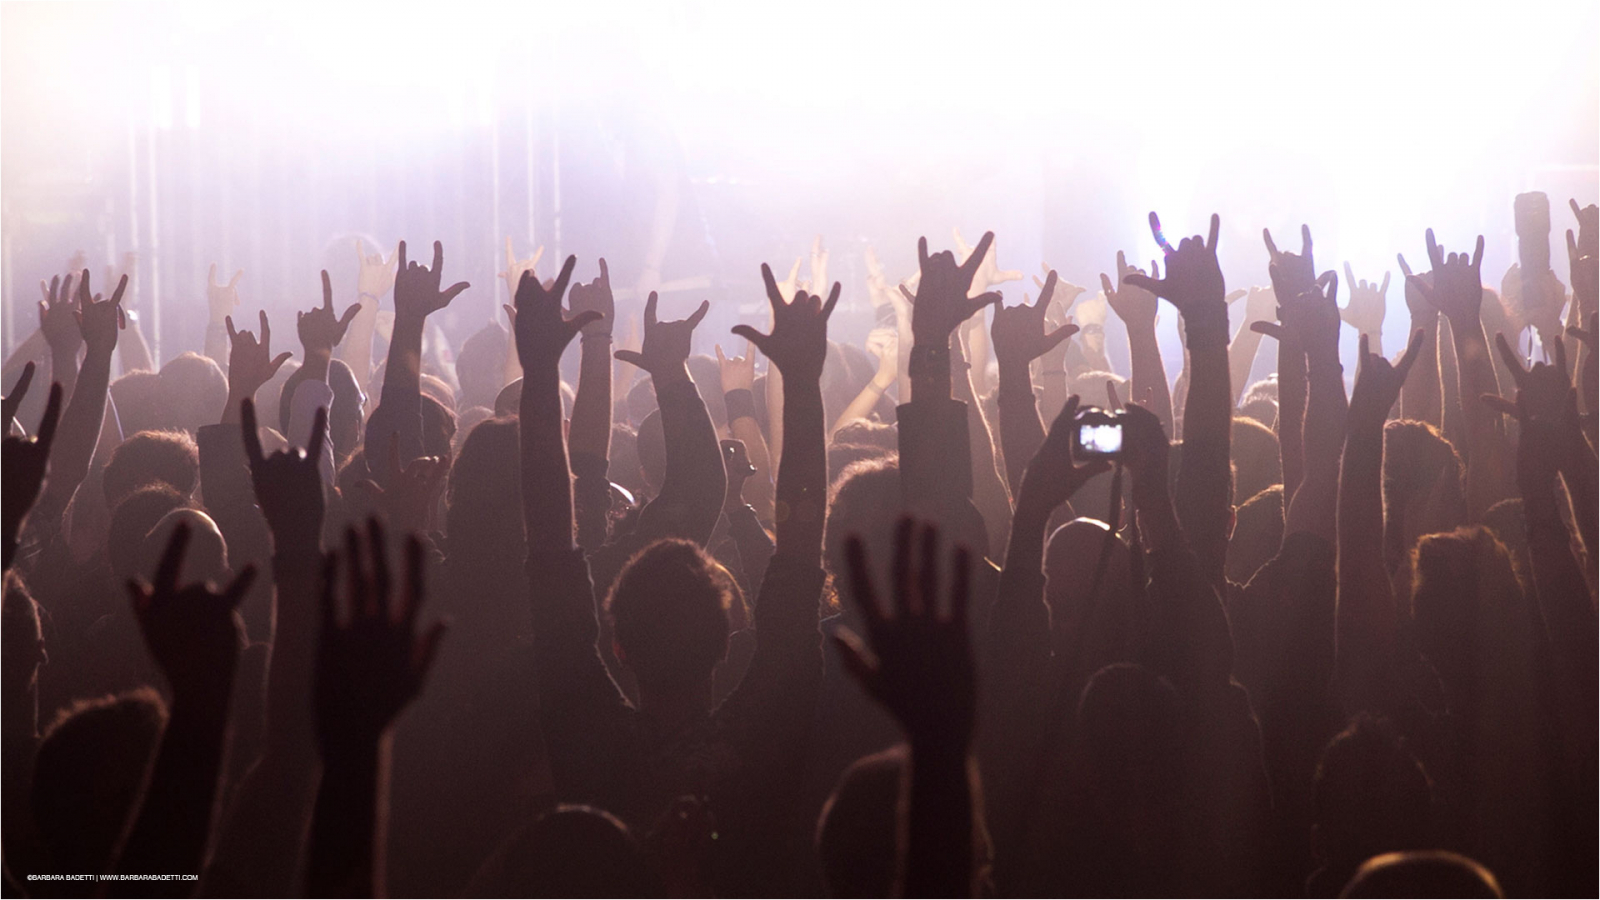 Free Download Displaying 12 Images For I Love Rock Music Wallpaper